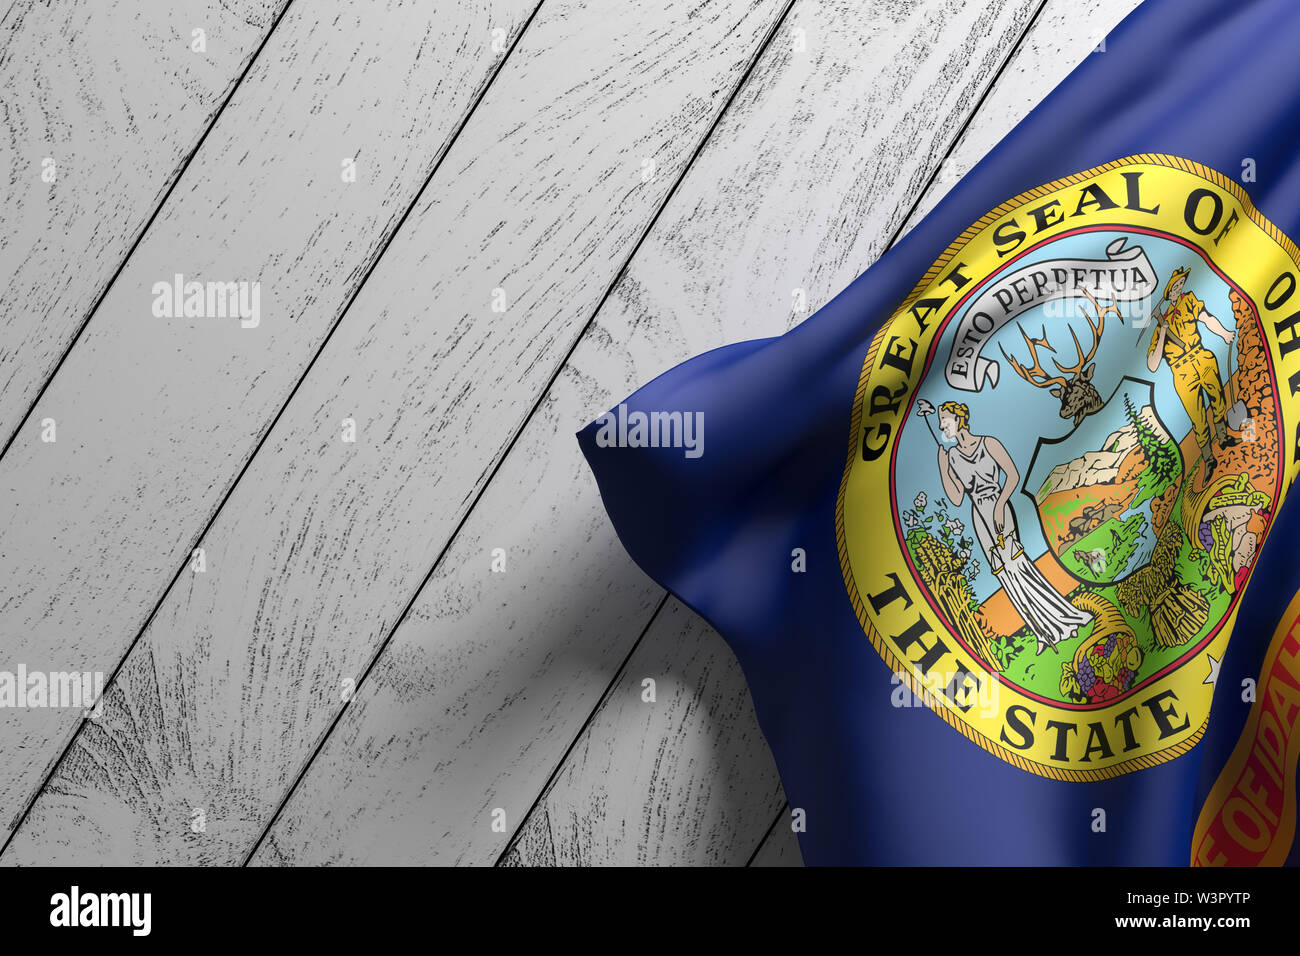 3d rendering of an American Idaho State flag on a wooden surface - Stock Image